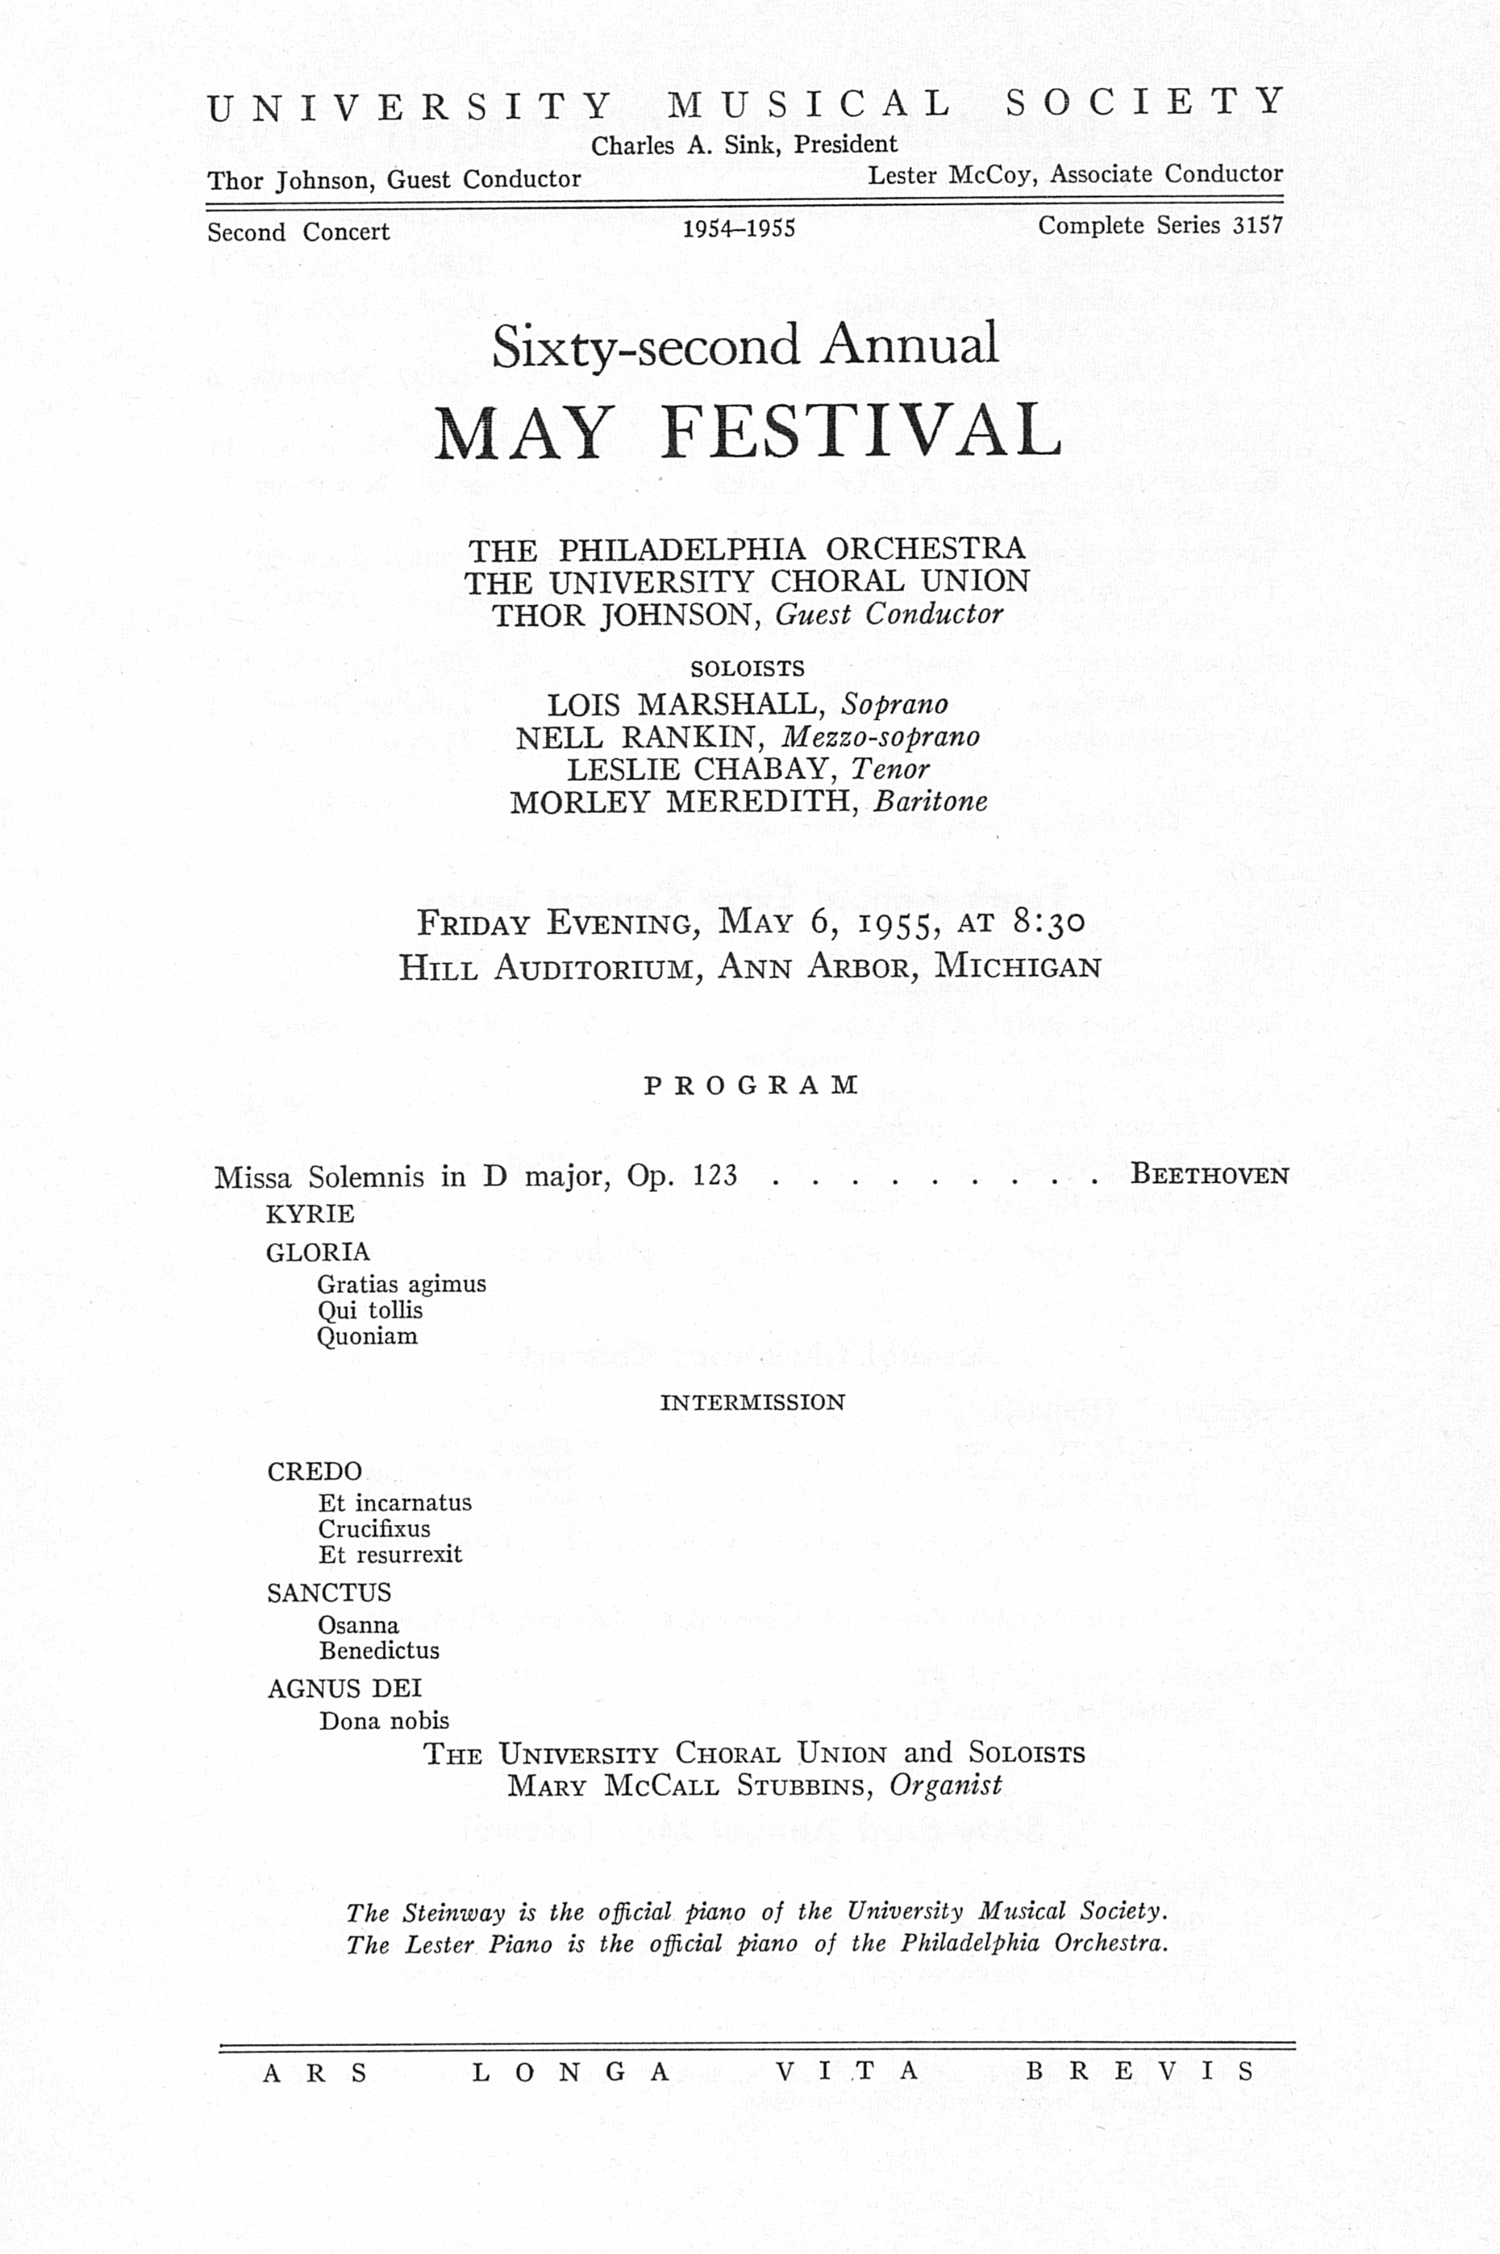 UMS Concert Program, May 6, 1955: Sixty-second Annual May Festival -- The Philadelphia Orchestra image